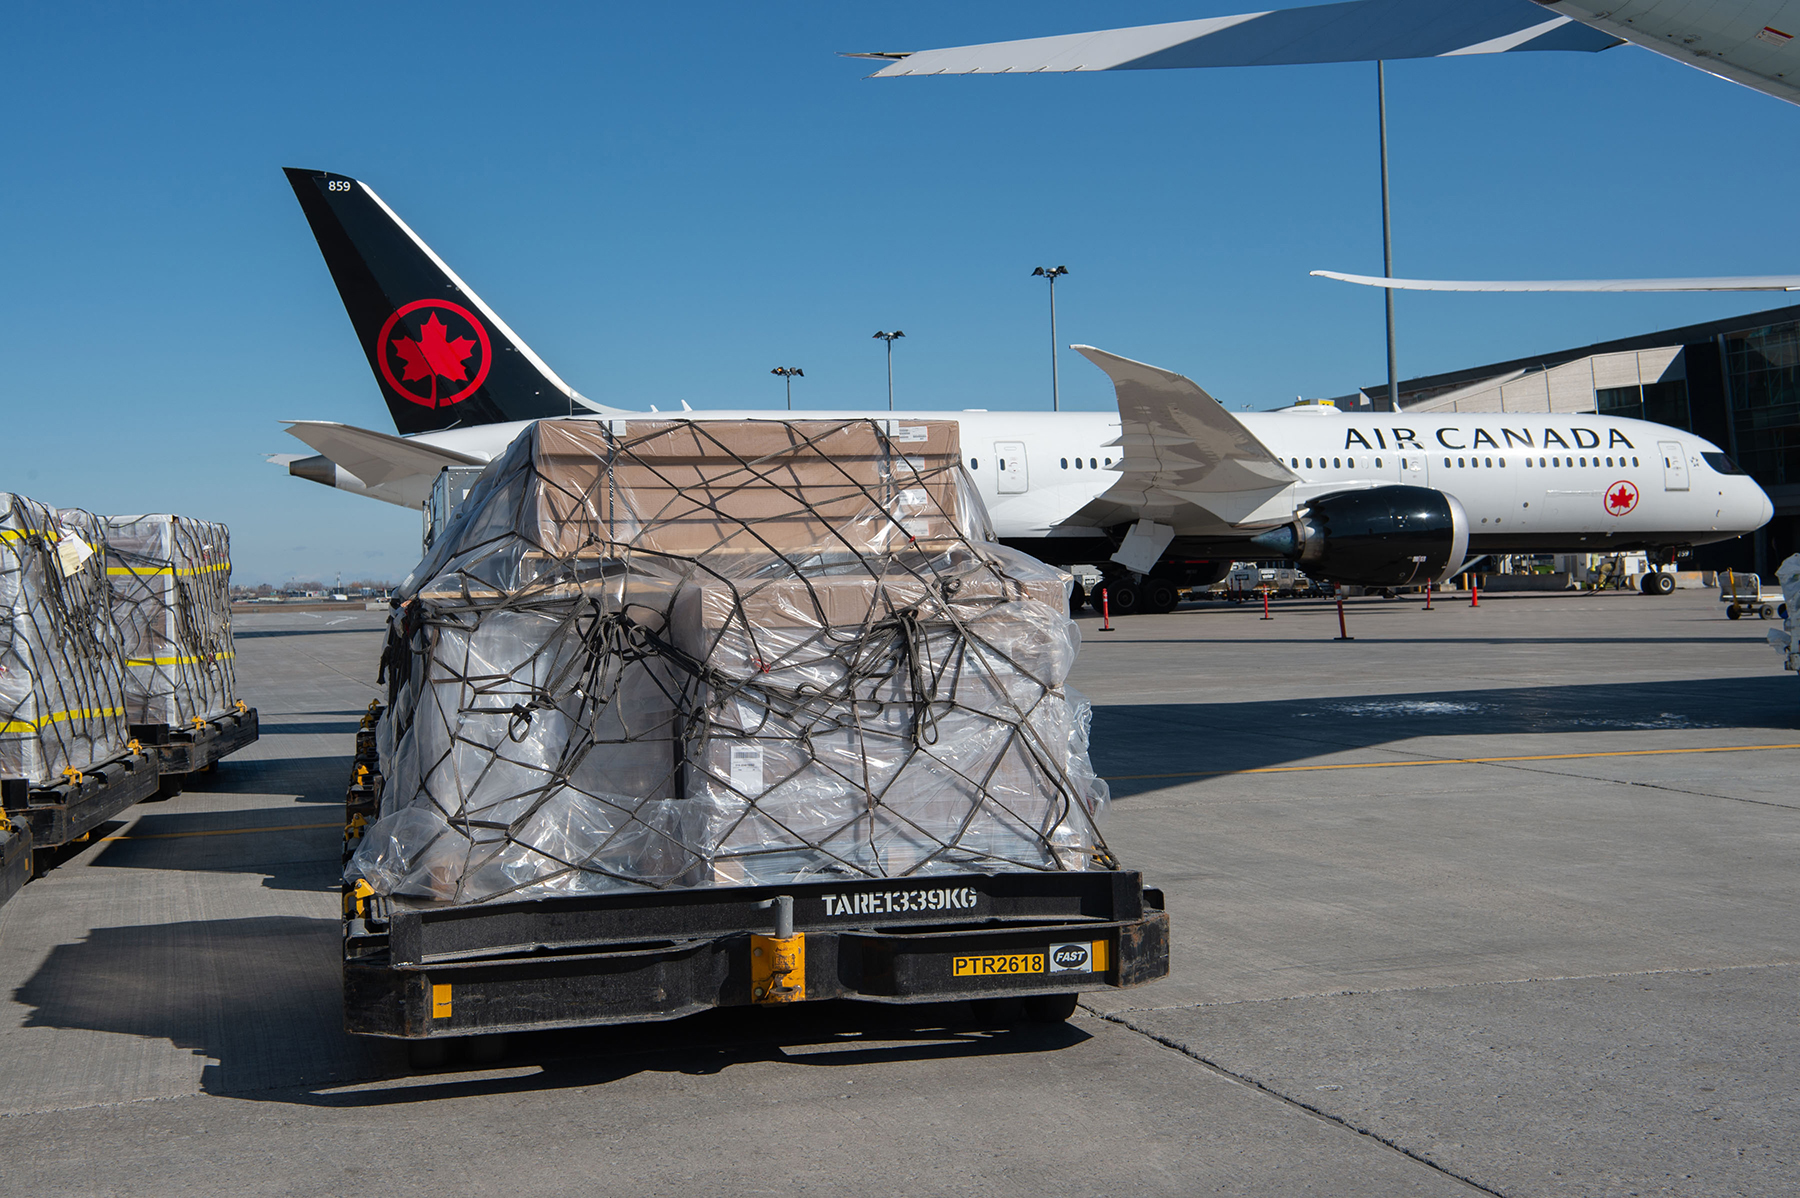 At $358 million in revenue for the second quarter of 2021 Air Canada Cargo recorded the best quarterly performance ever.